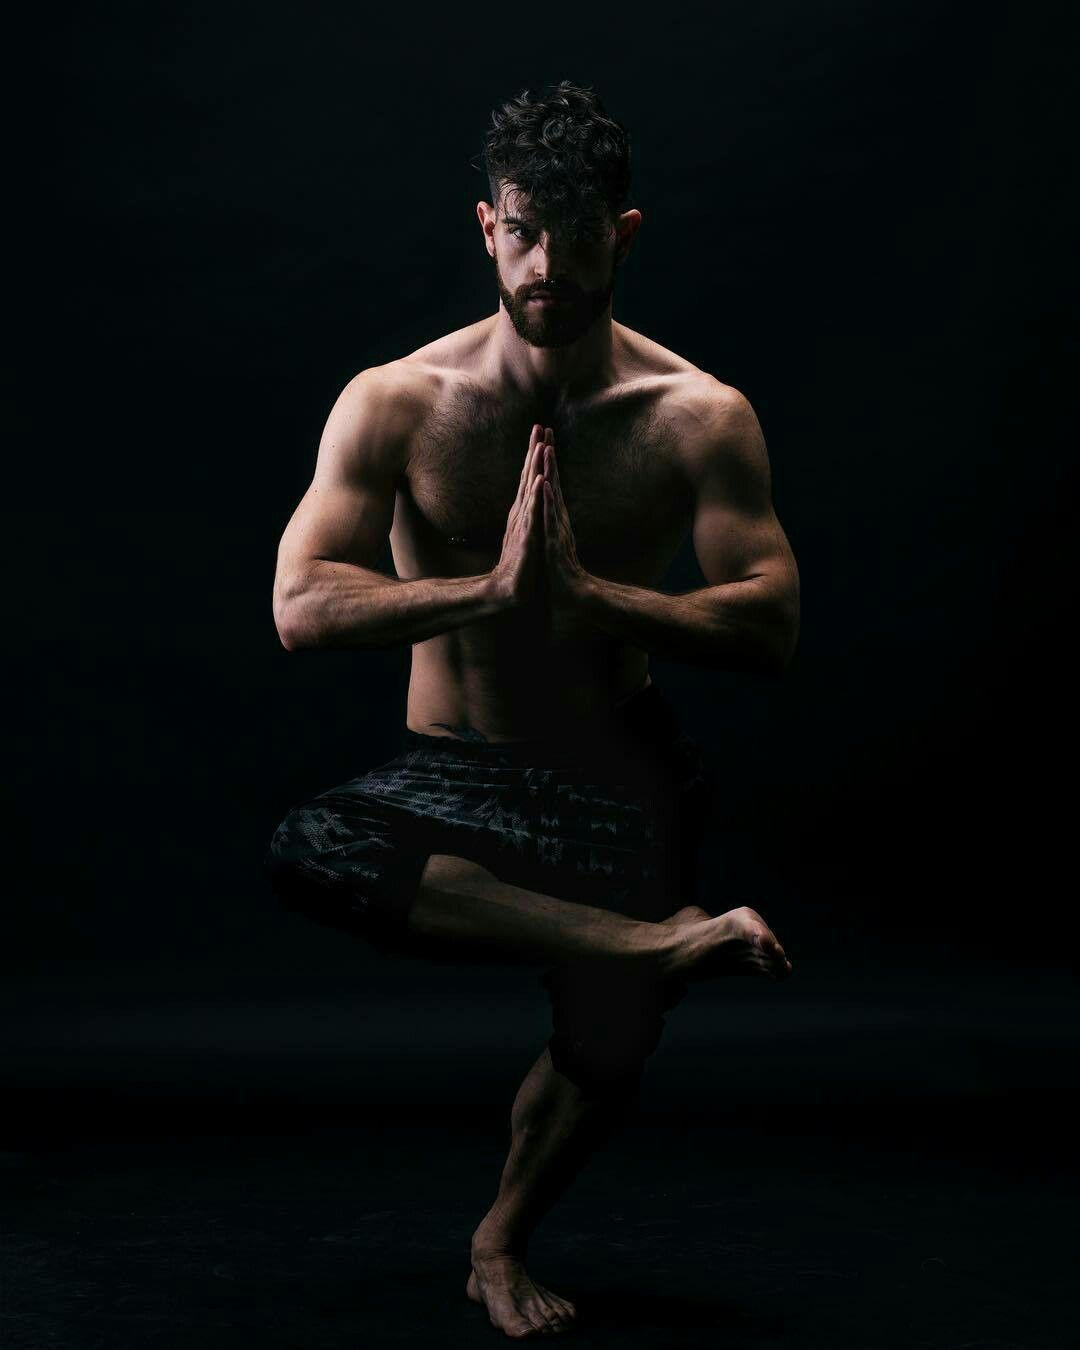 Pin by Grey Wolf on Absolutely Breathtaking Men! | Yoga